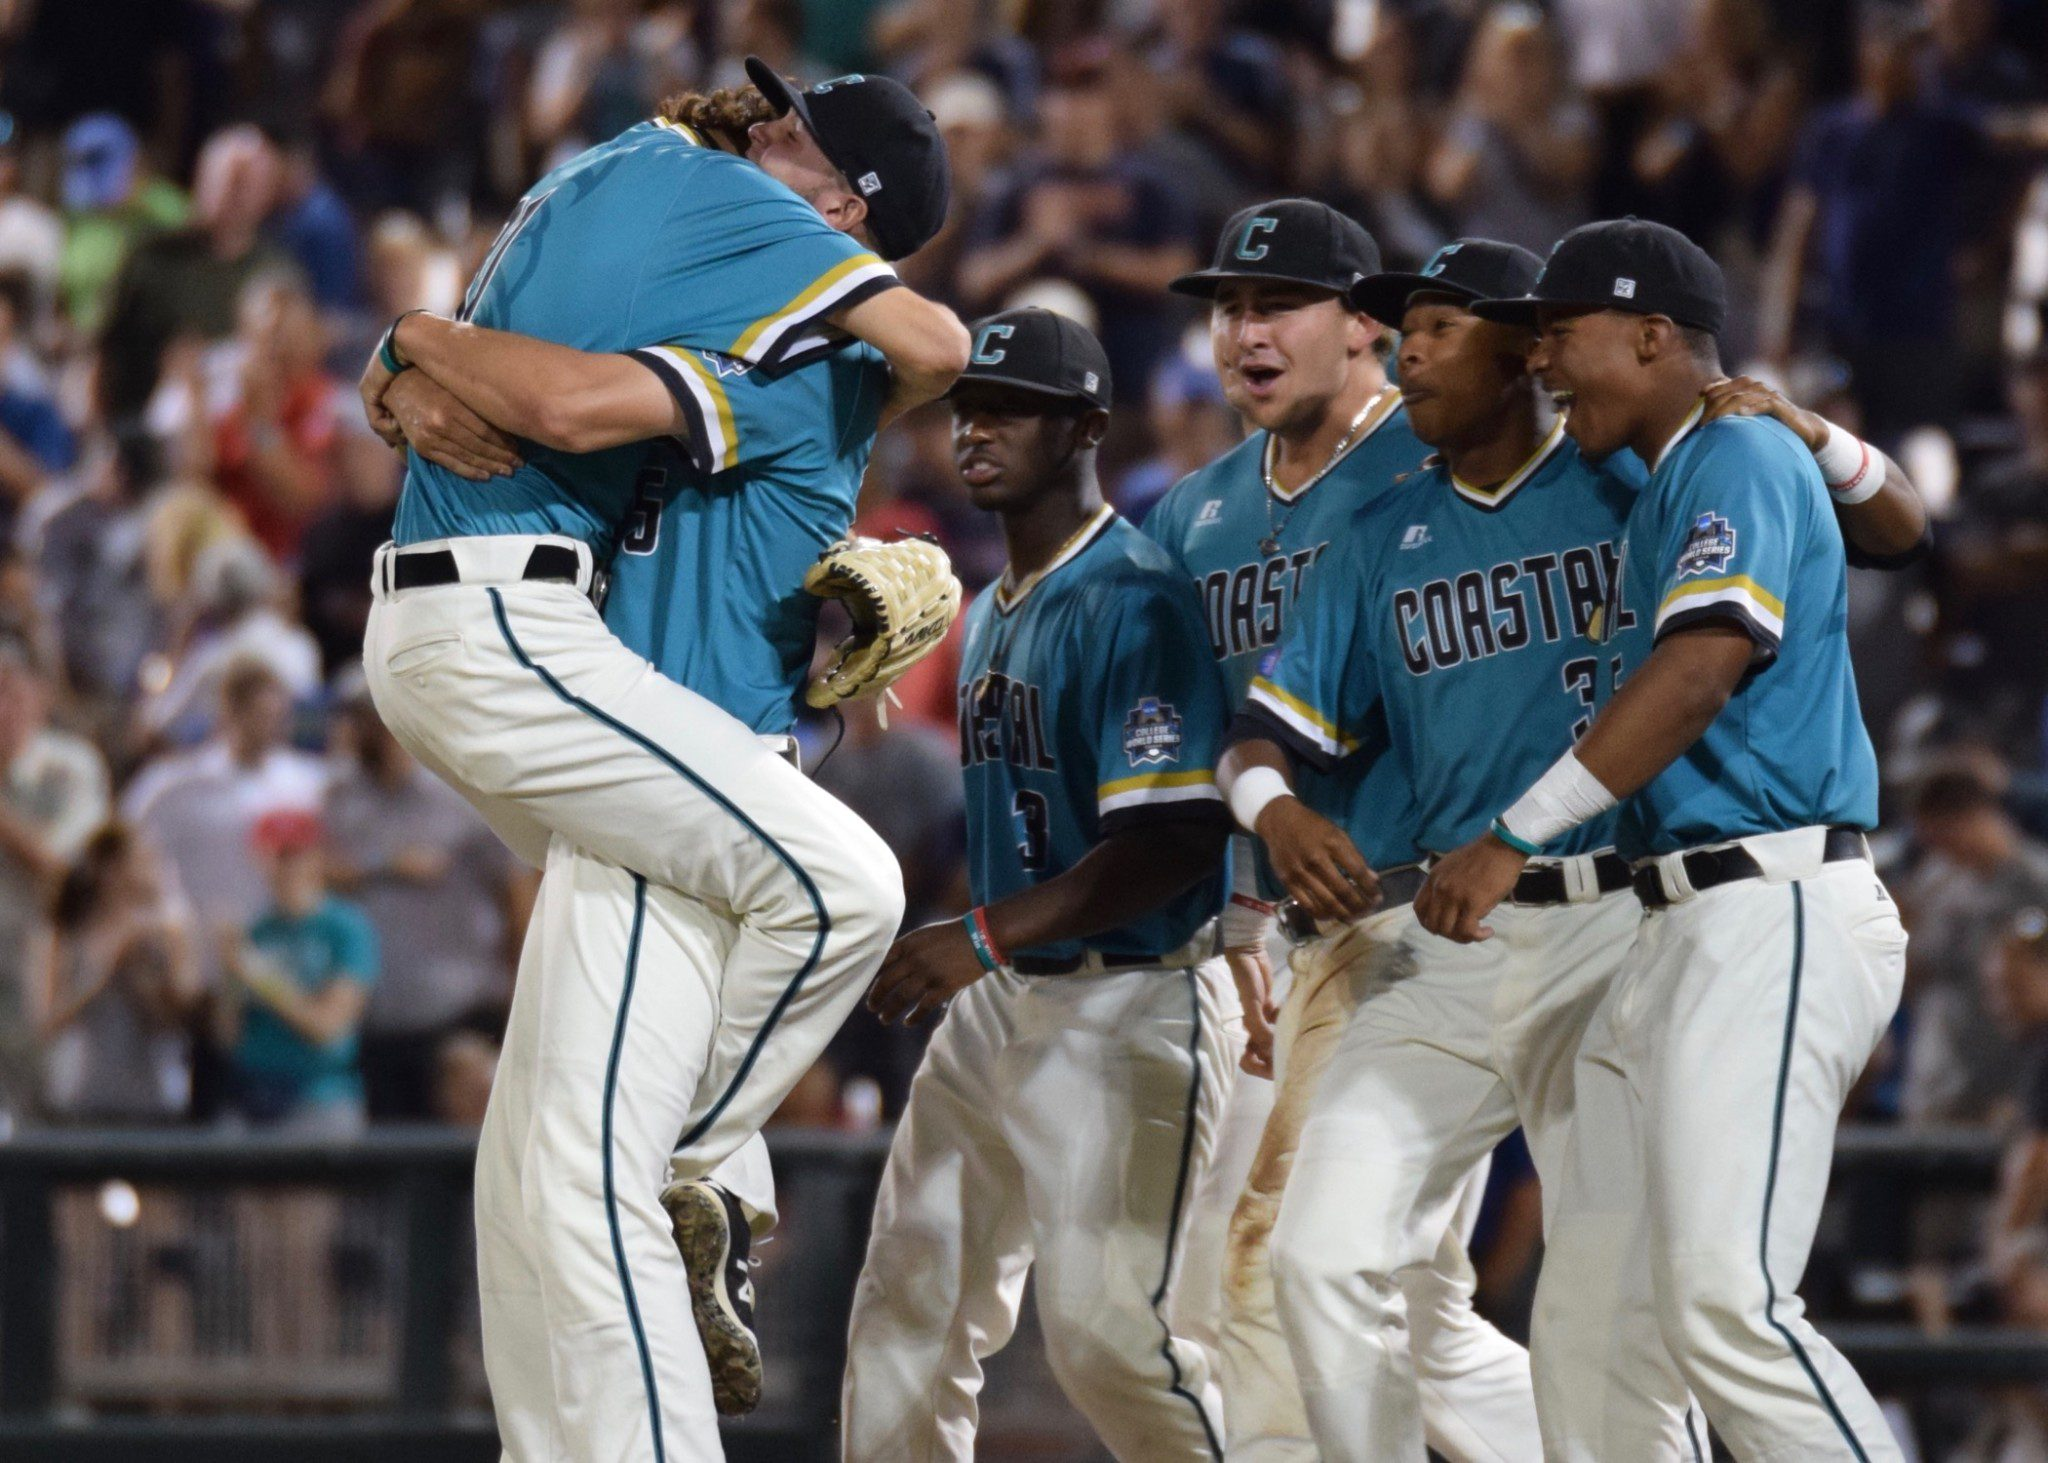 Coastal Carolina reliever Bobby Holmes leaps into Mike Morrison's arms after Tuesday's 5-4 win (Aaron Fitt)